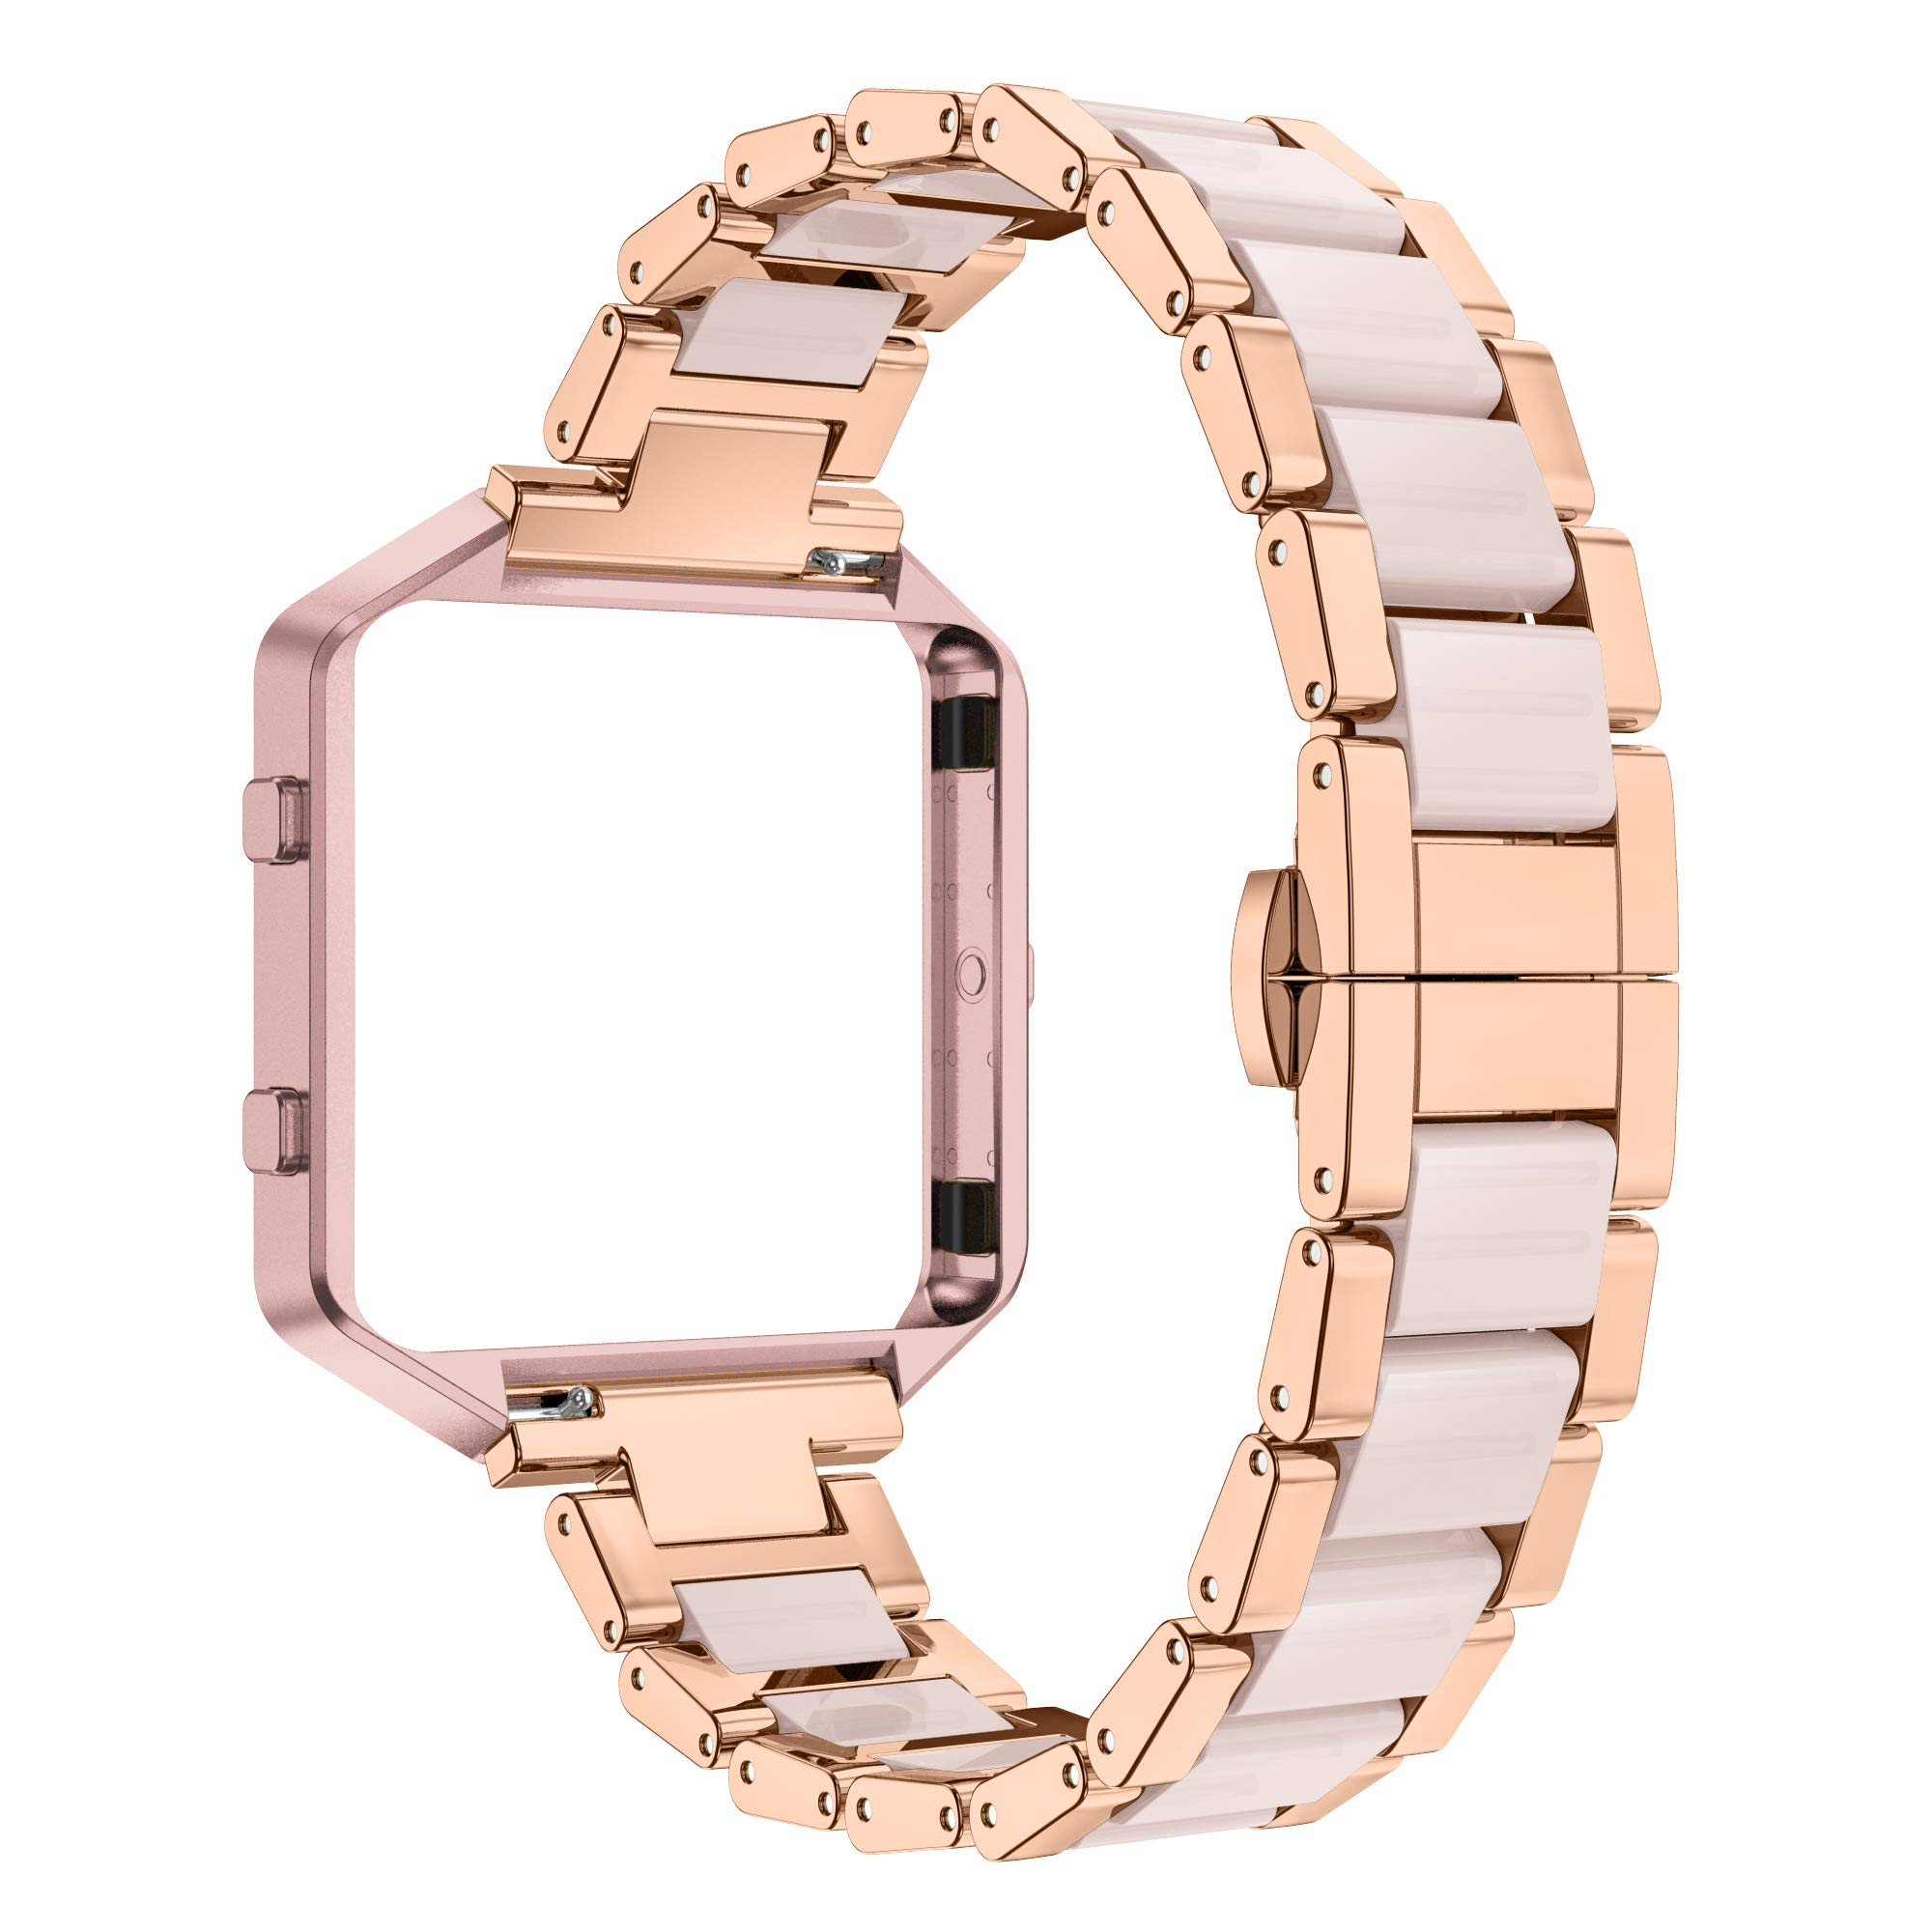 Wearlizer Compatible for with Fitbit Blaze Band Bands for Women Metal Wristband Replacement Fitbit Blaze Band with Frame Resin Bracelet Fit bit Blaze Resin Rose Gold